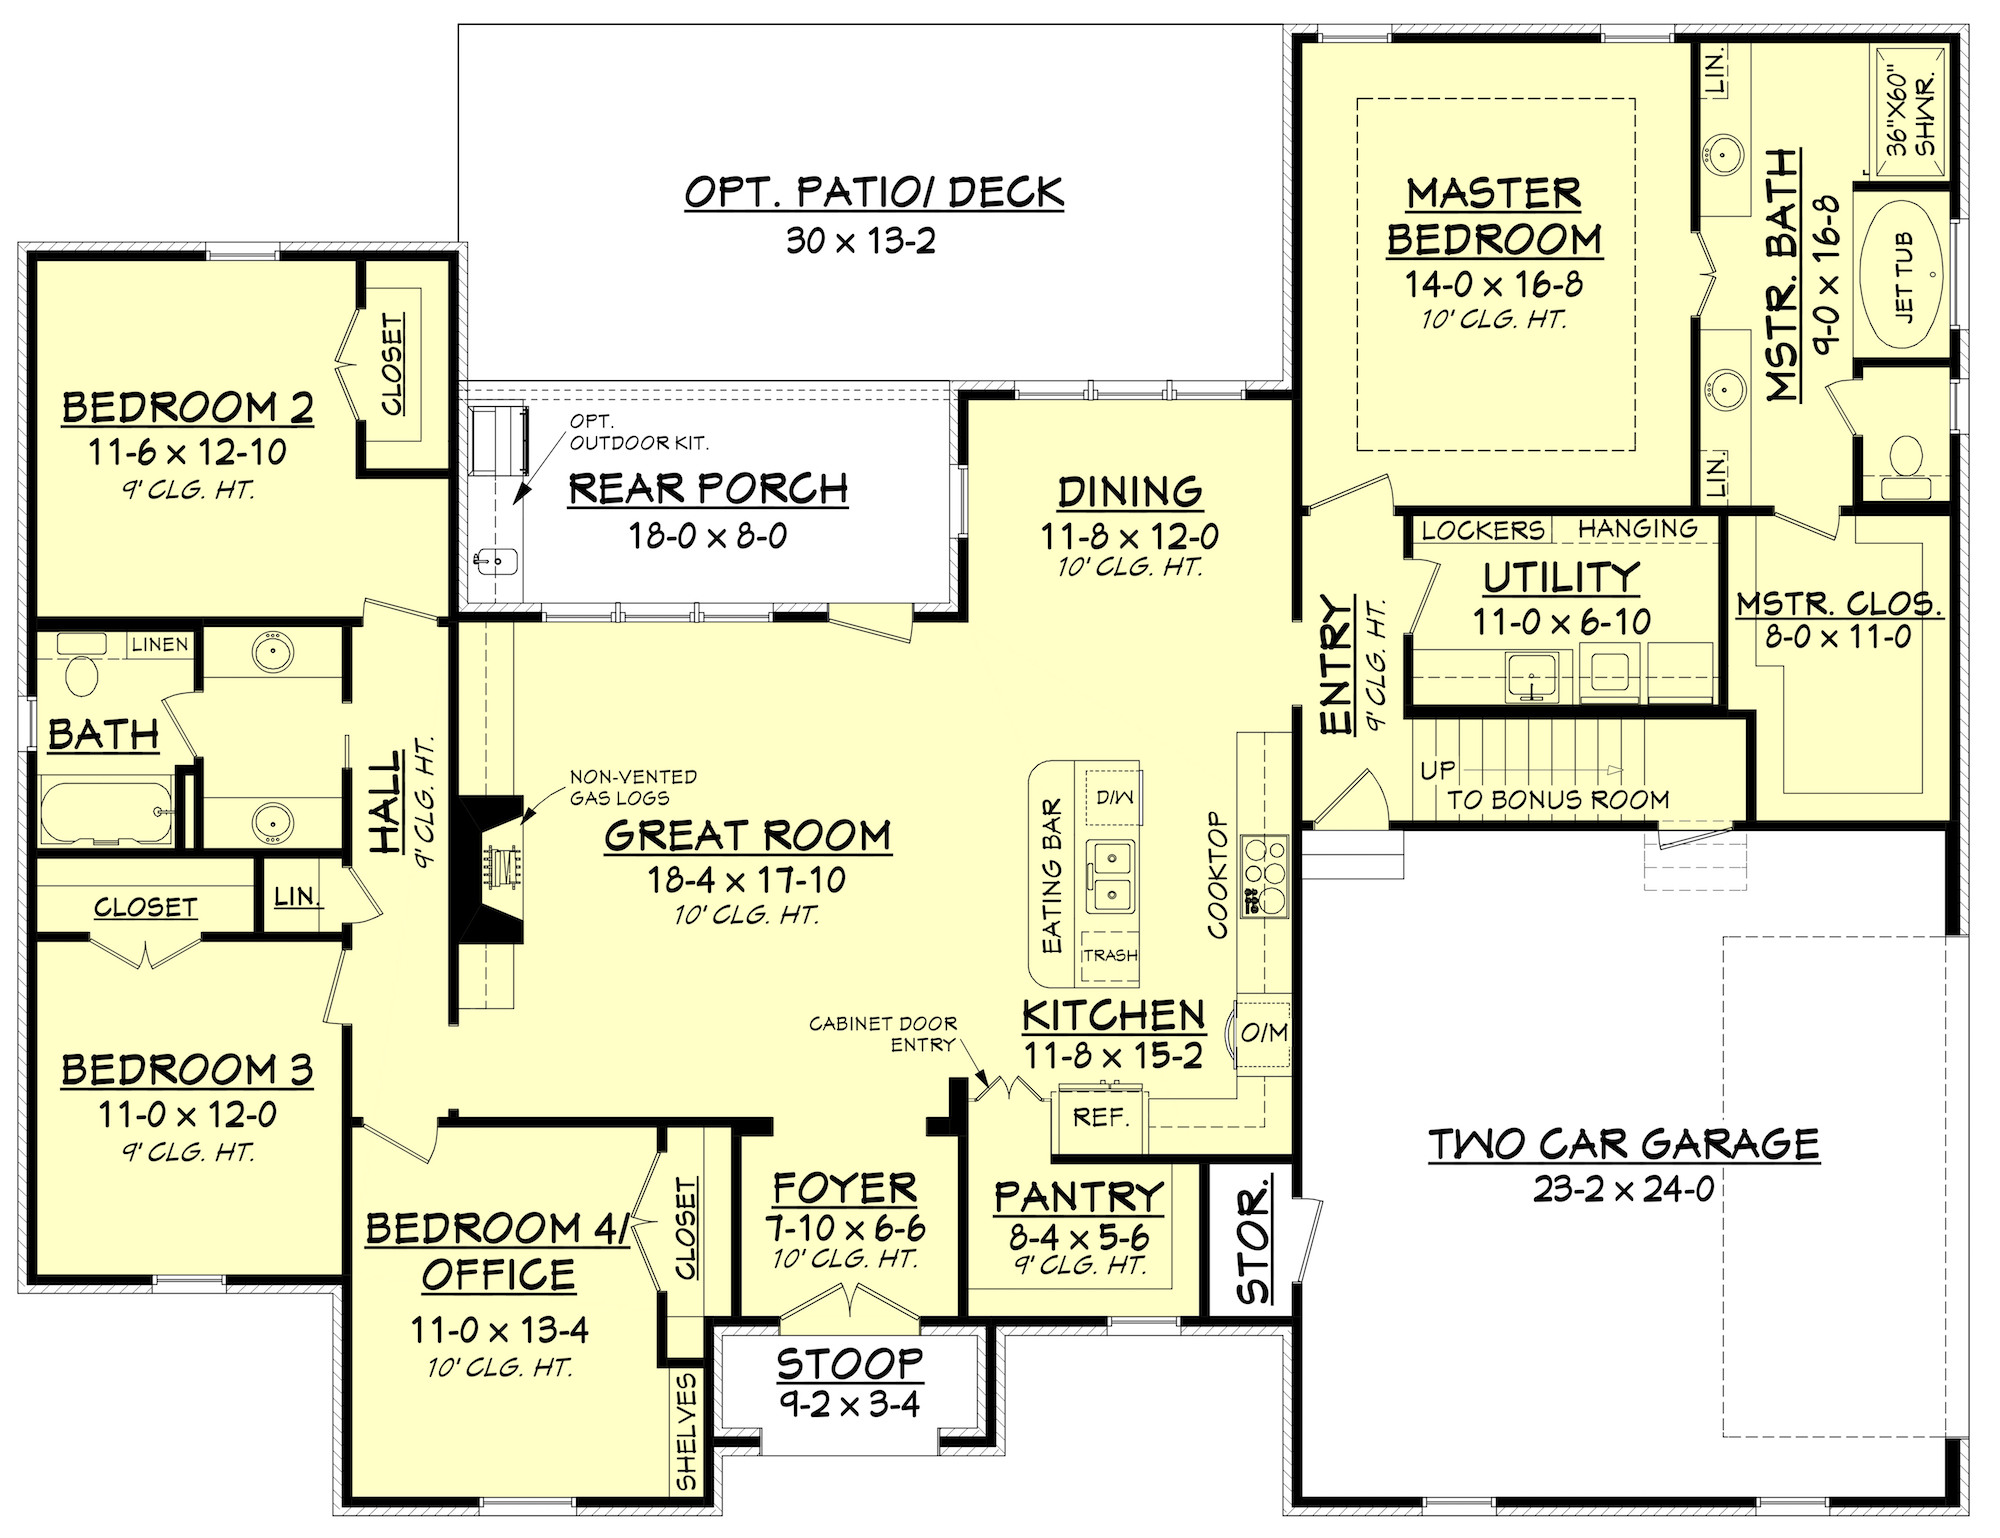 Acadian house plan 142 1154 4 bedrm 2210 sq ft home plan for Houde plans